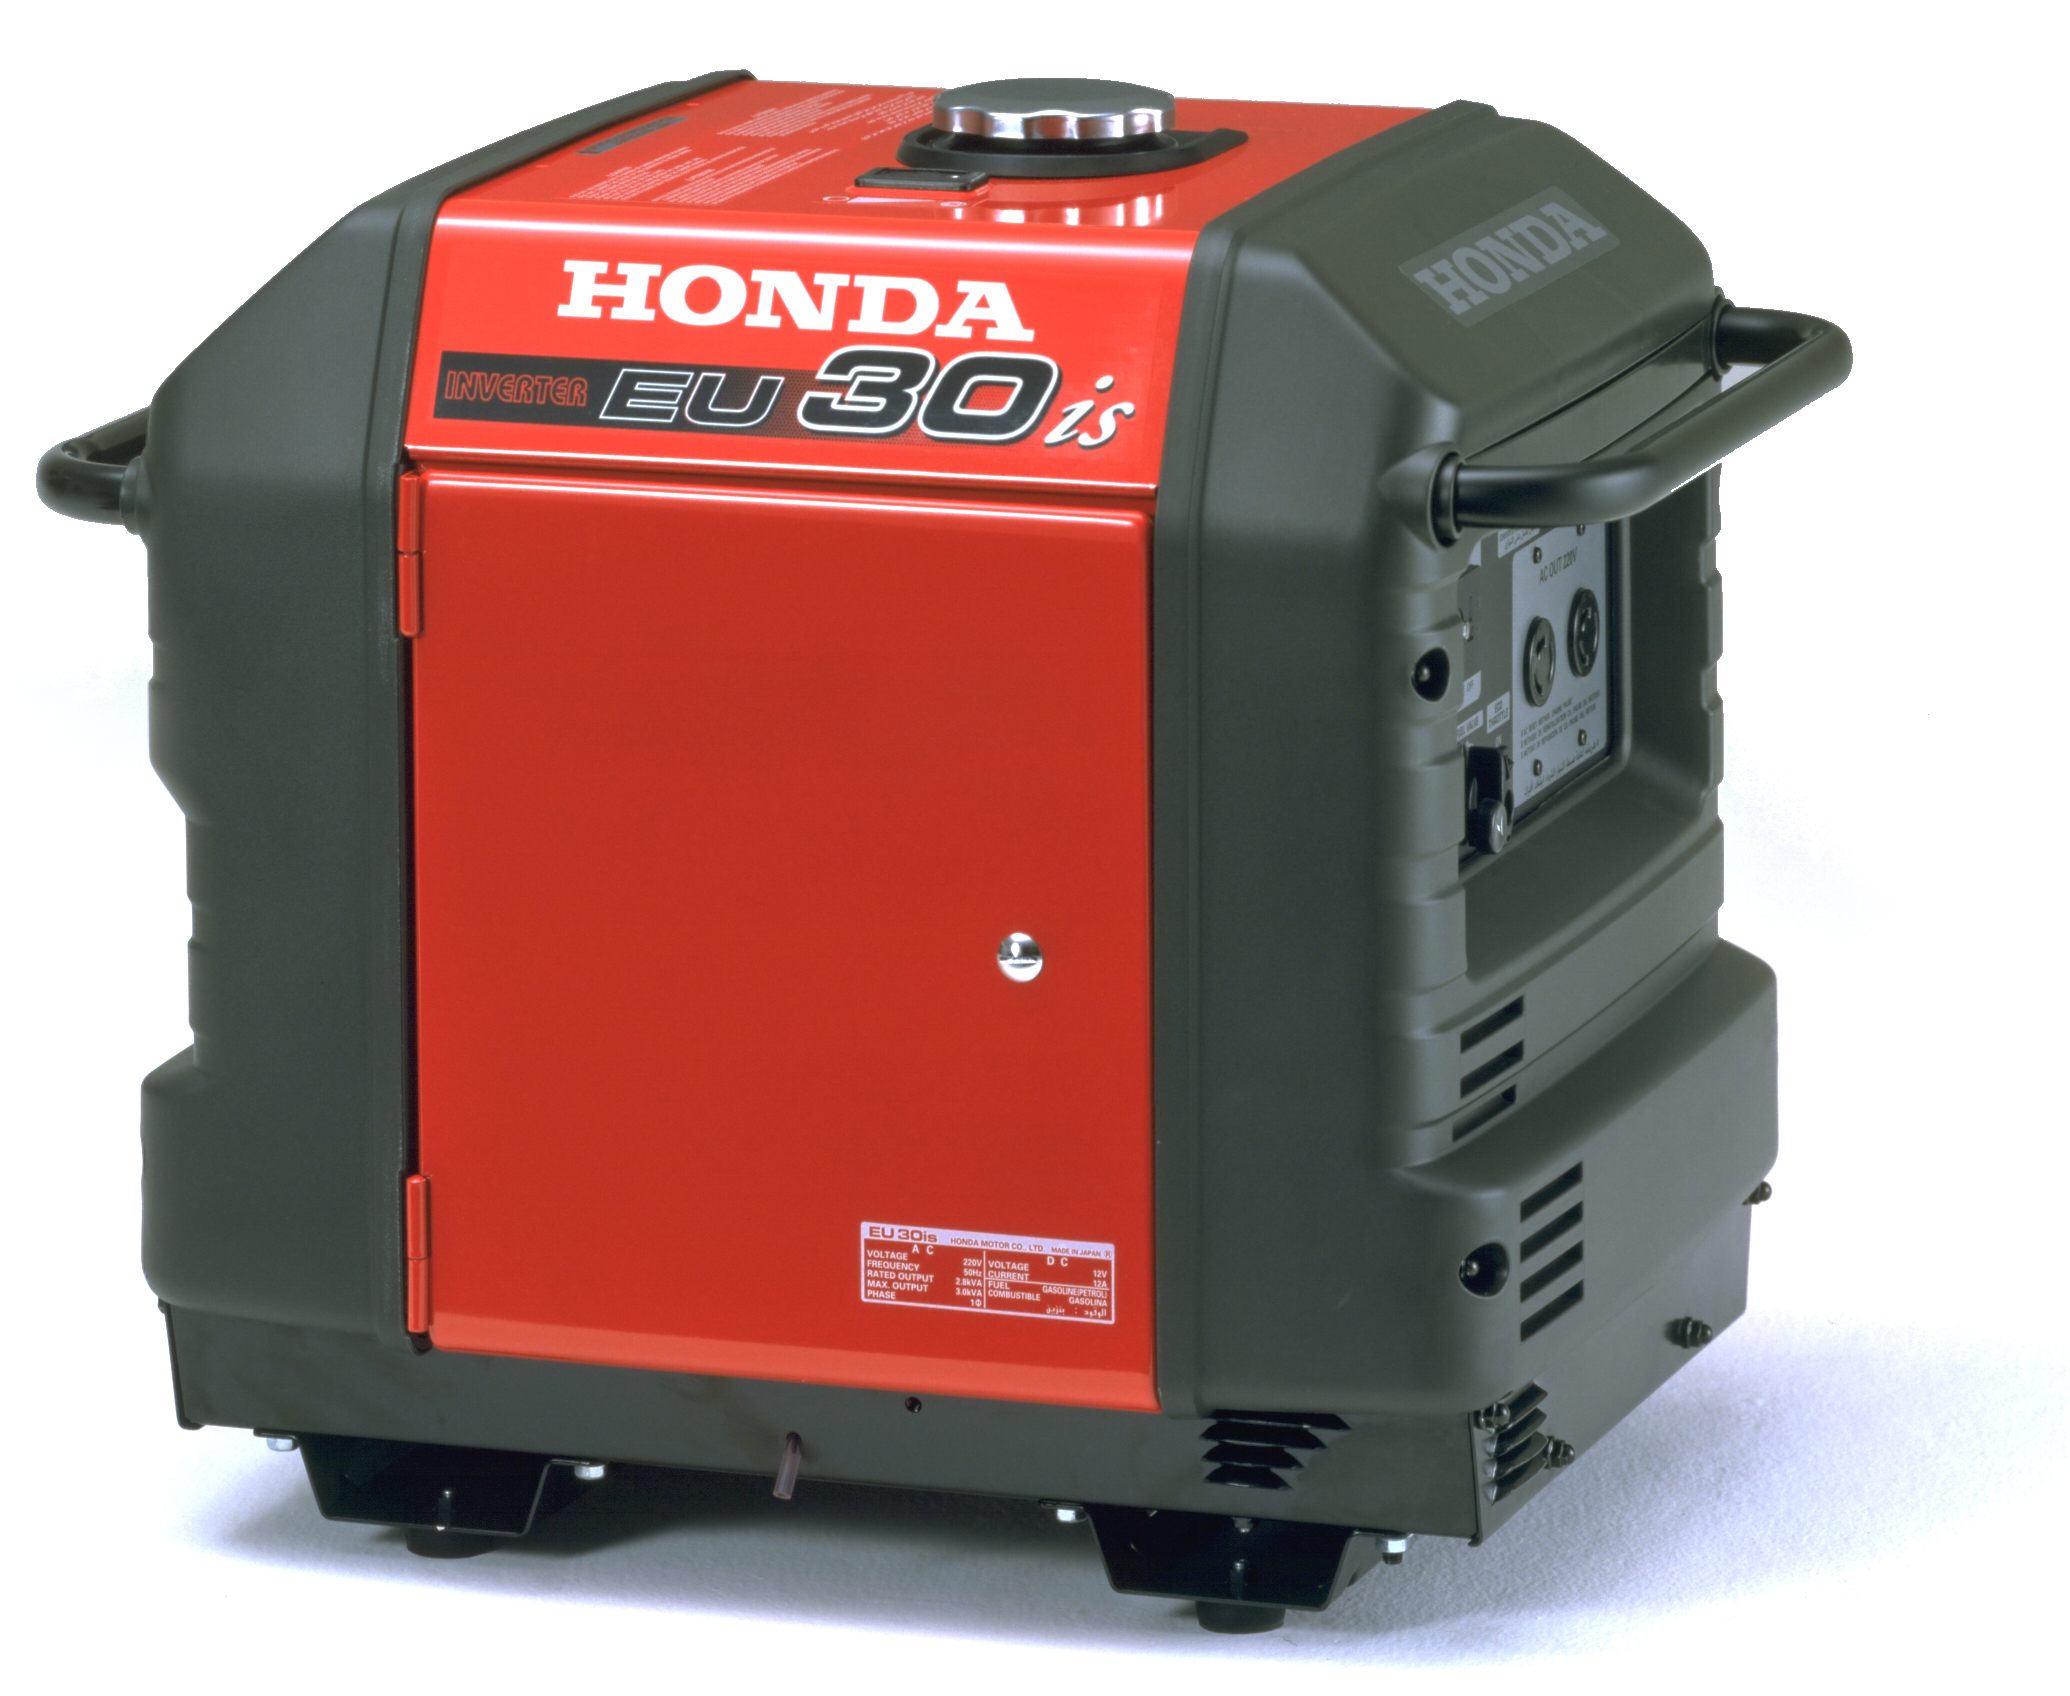 Poor performance with higher fuel consumption HONDA PORTABLE